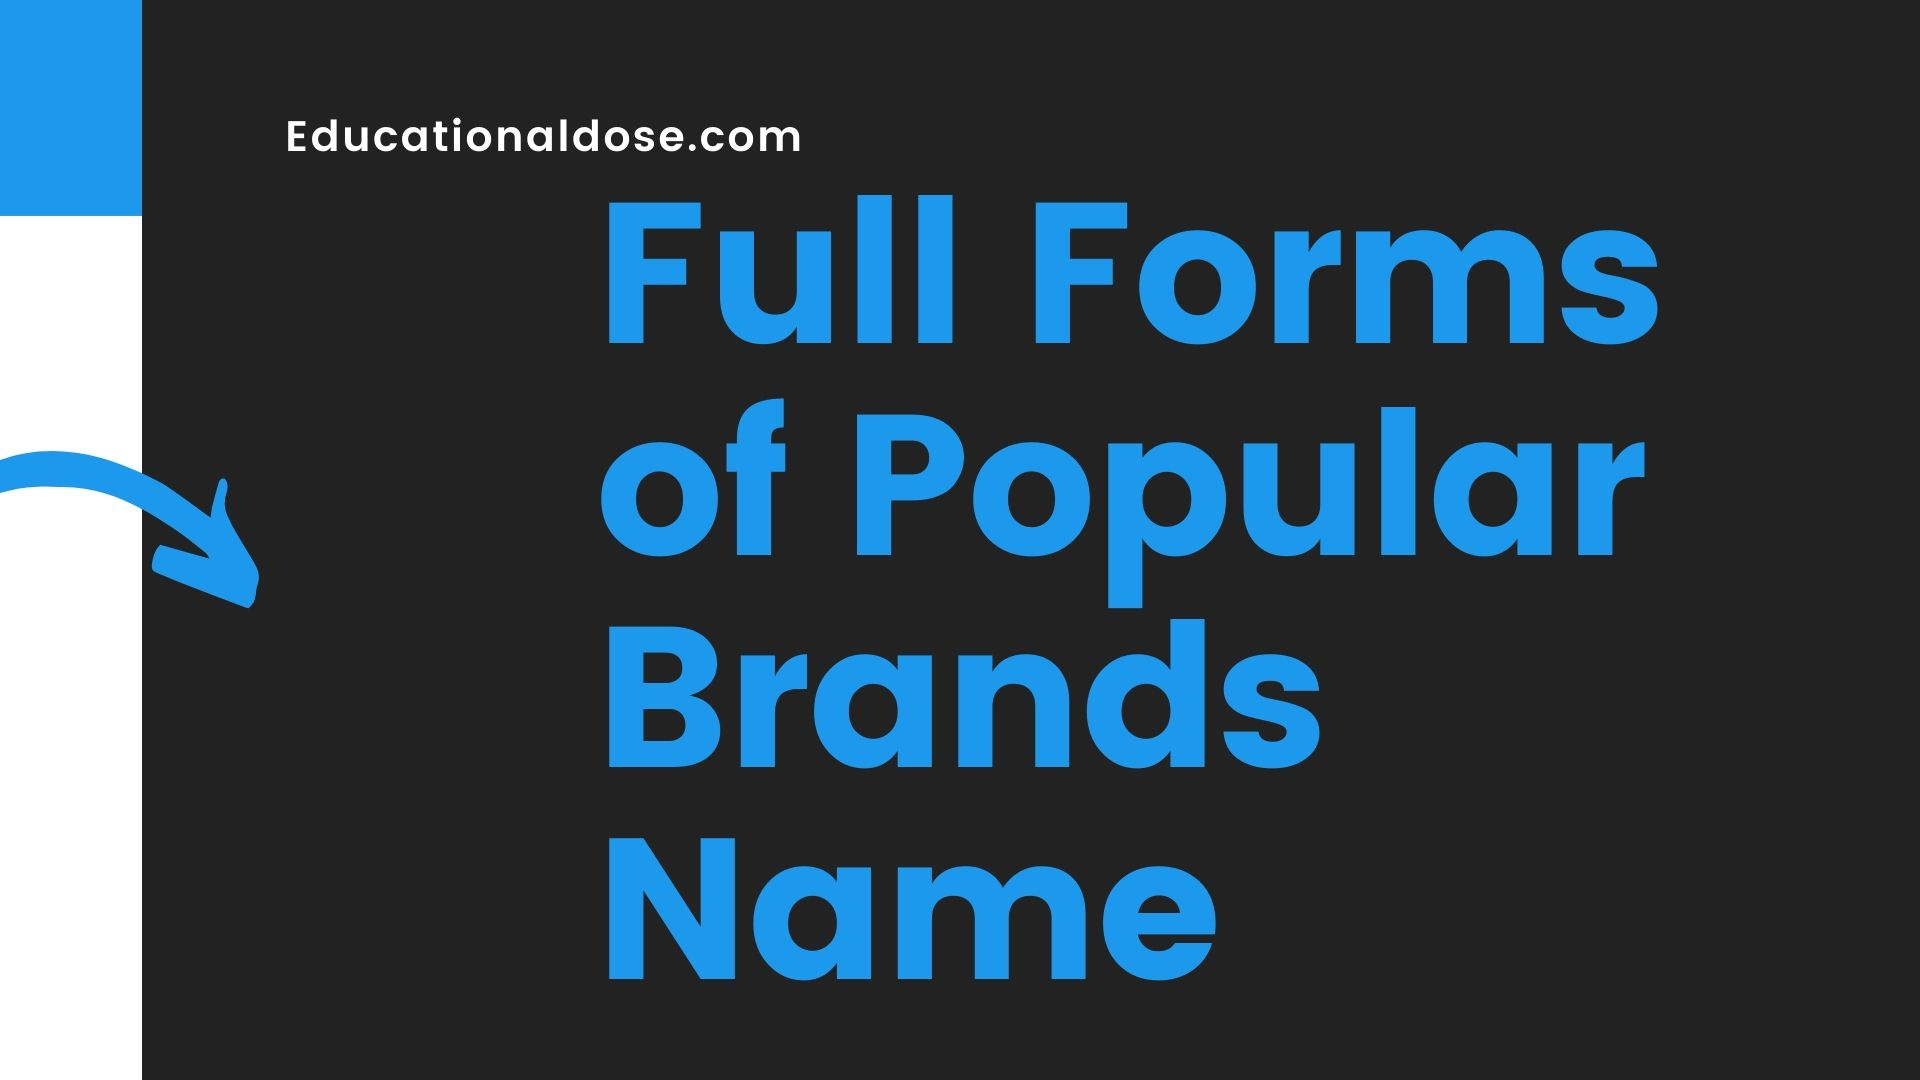 Full Forms of Popular Brands Name